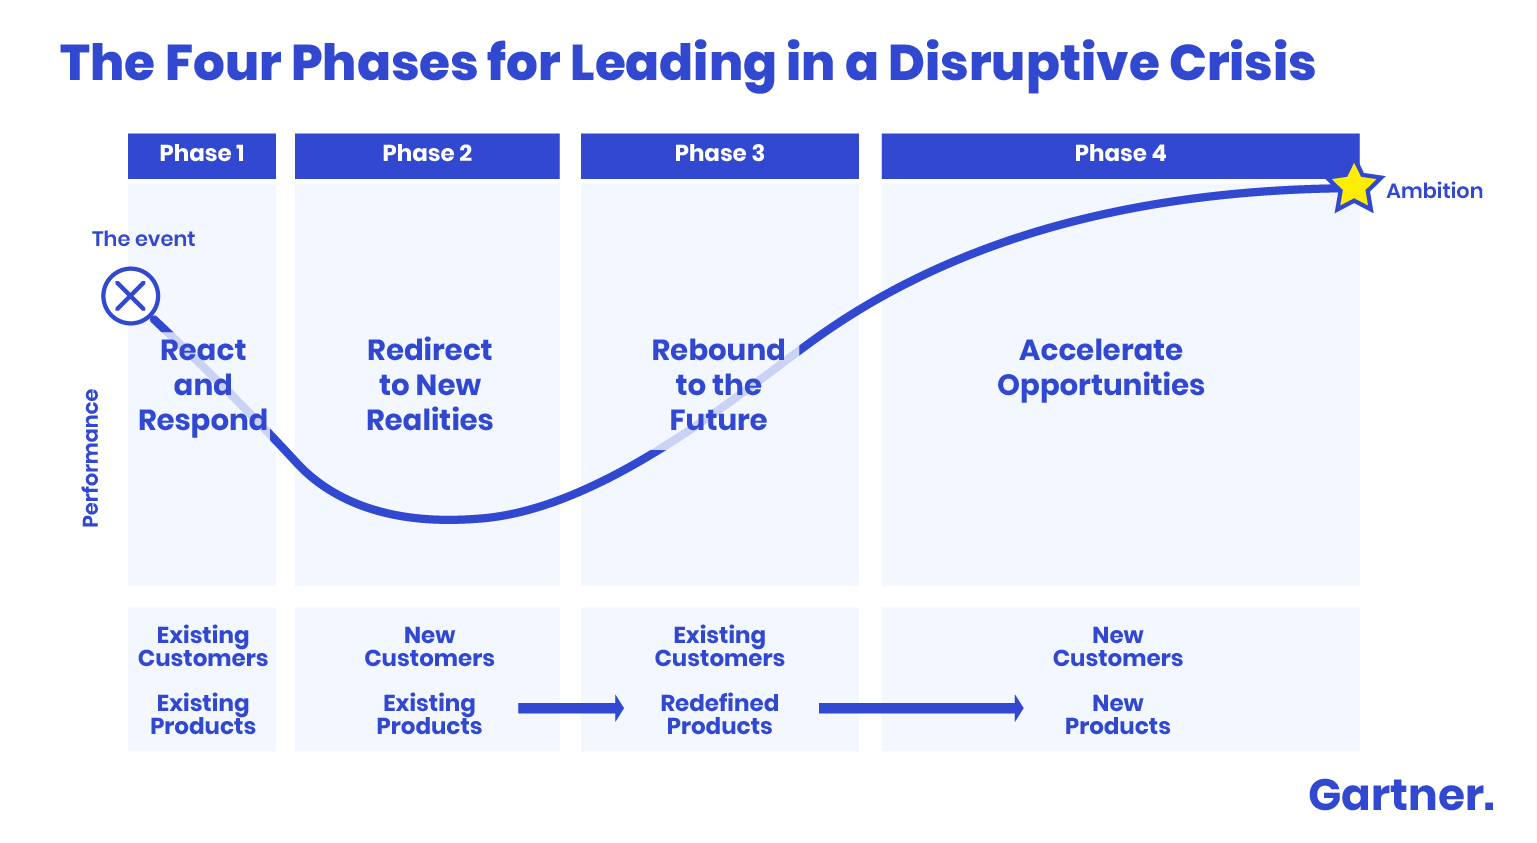 https://www.gartner.com/en/documents/3982961/4-phases-for-technology-and-service-providers-to-lead-in